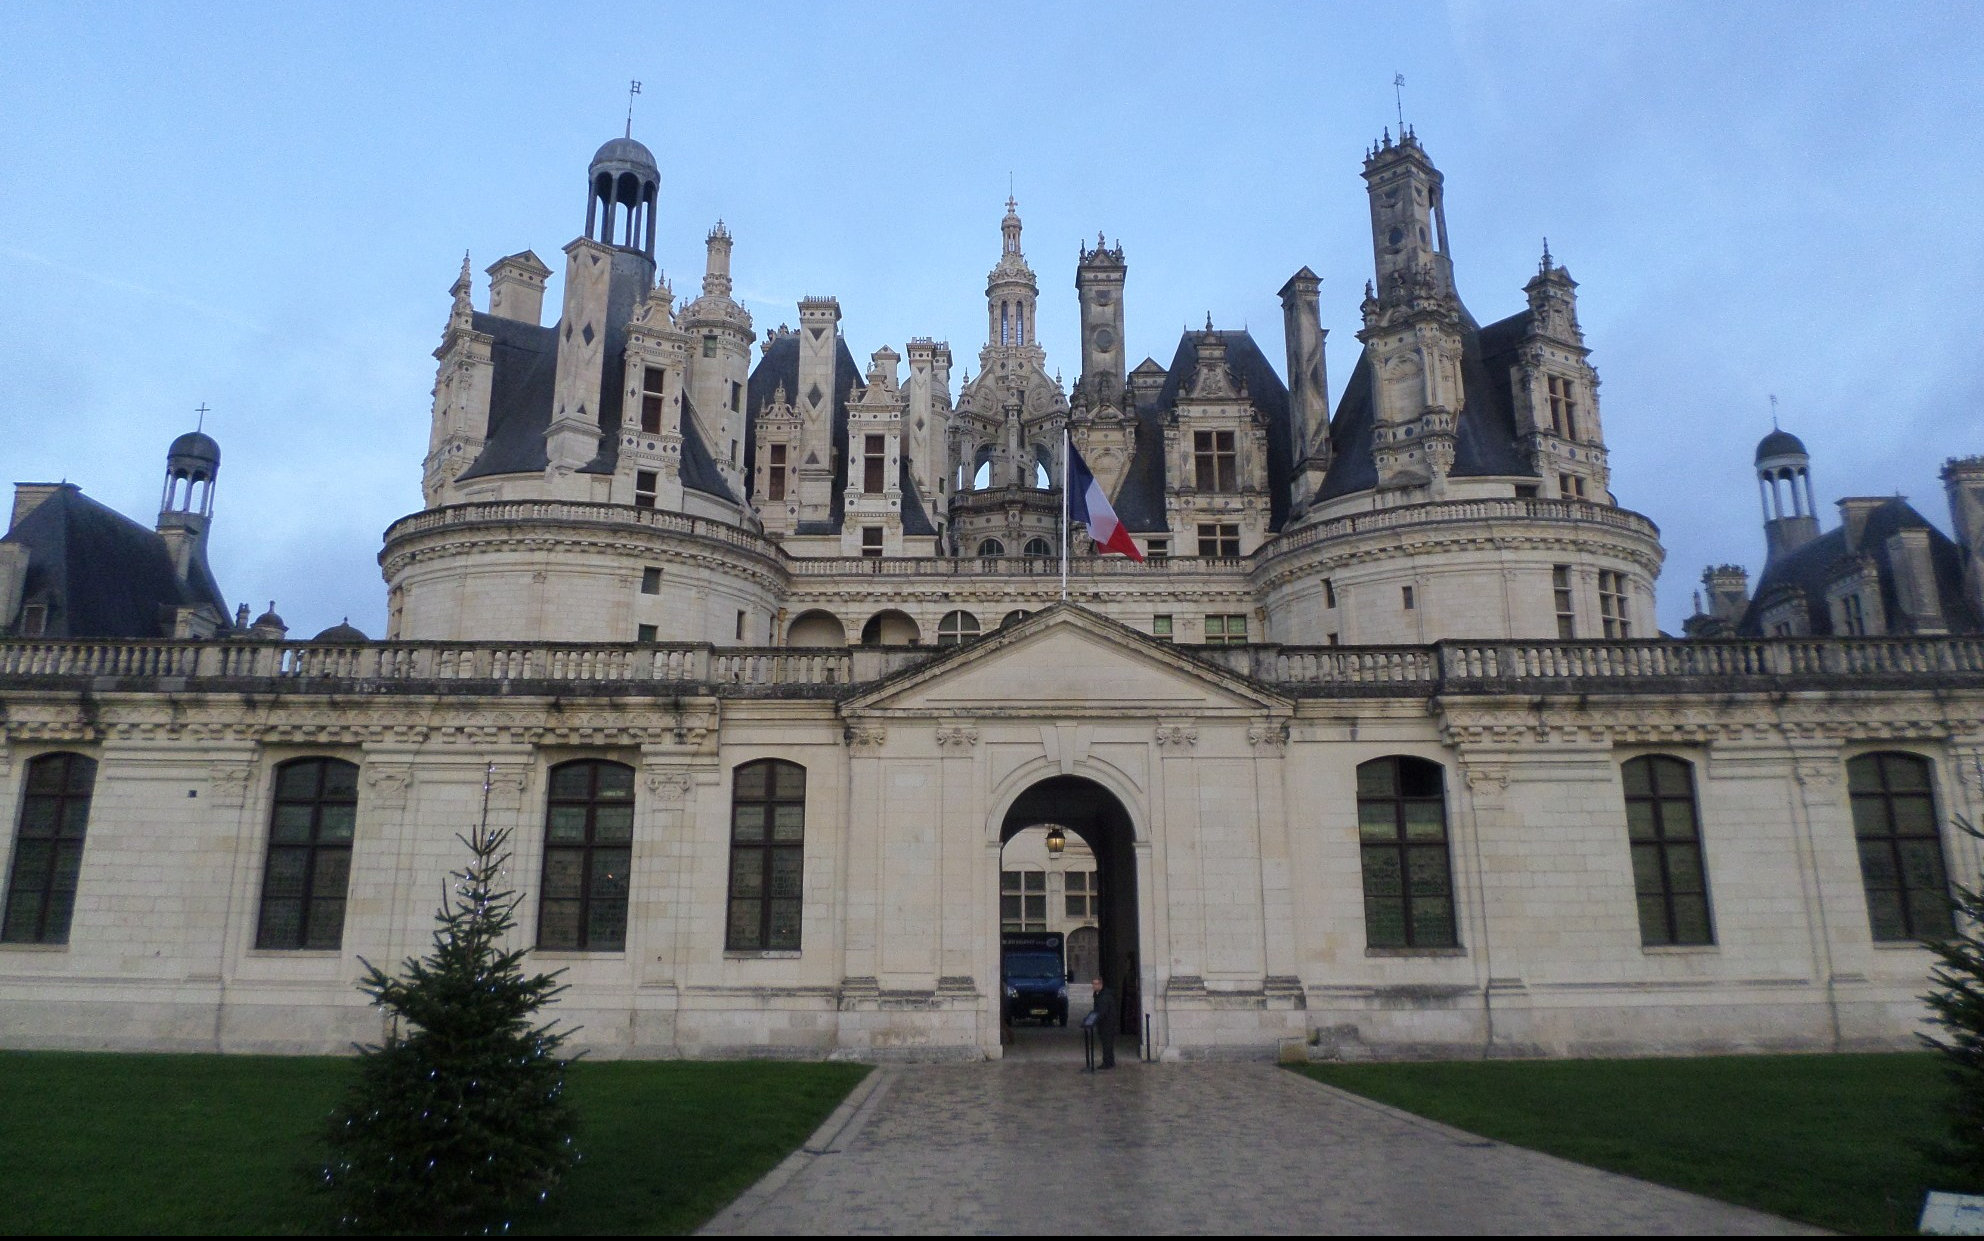 chambord-castle-main-ent-dec15